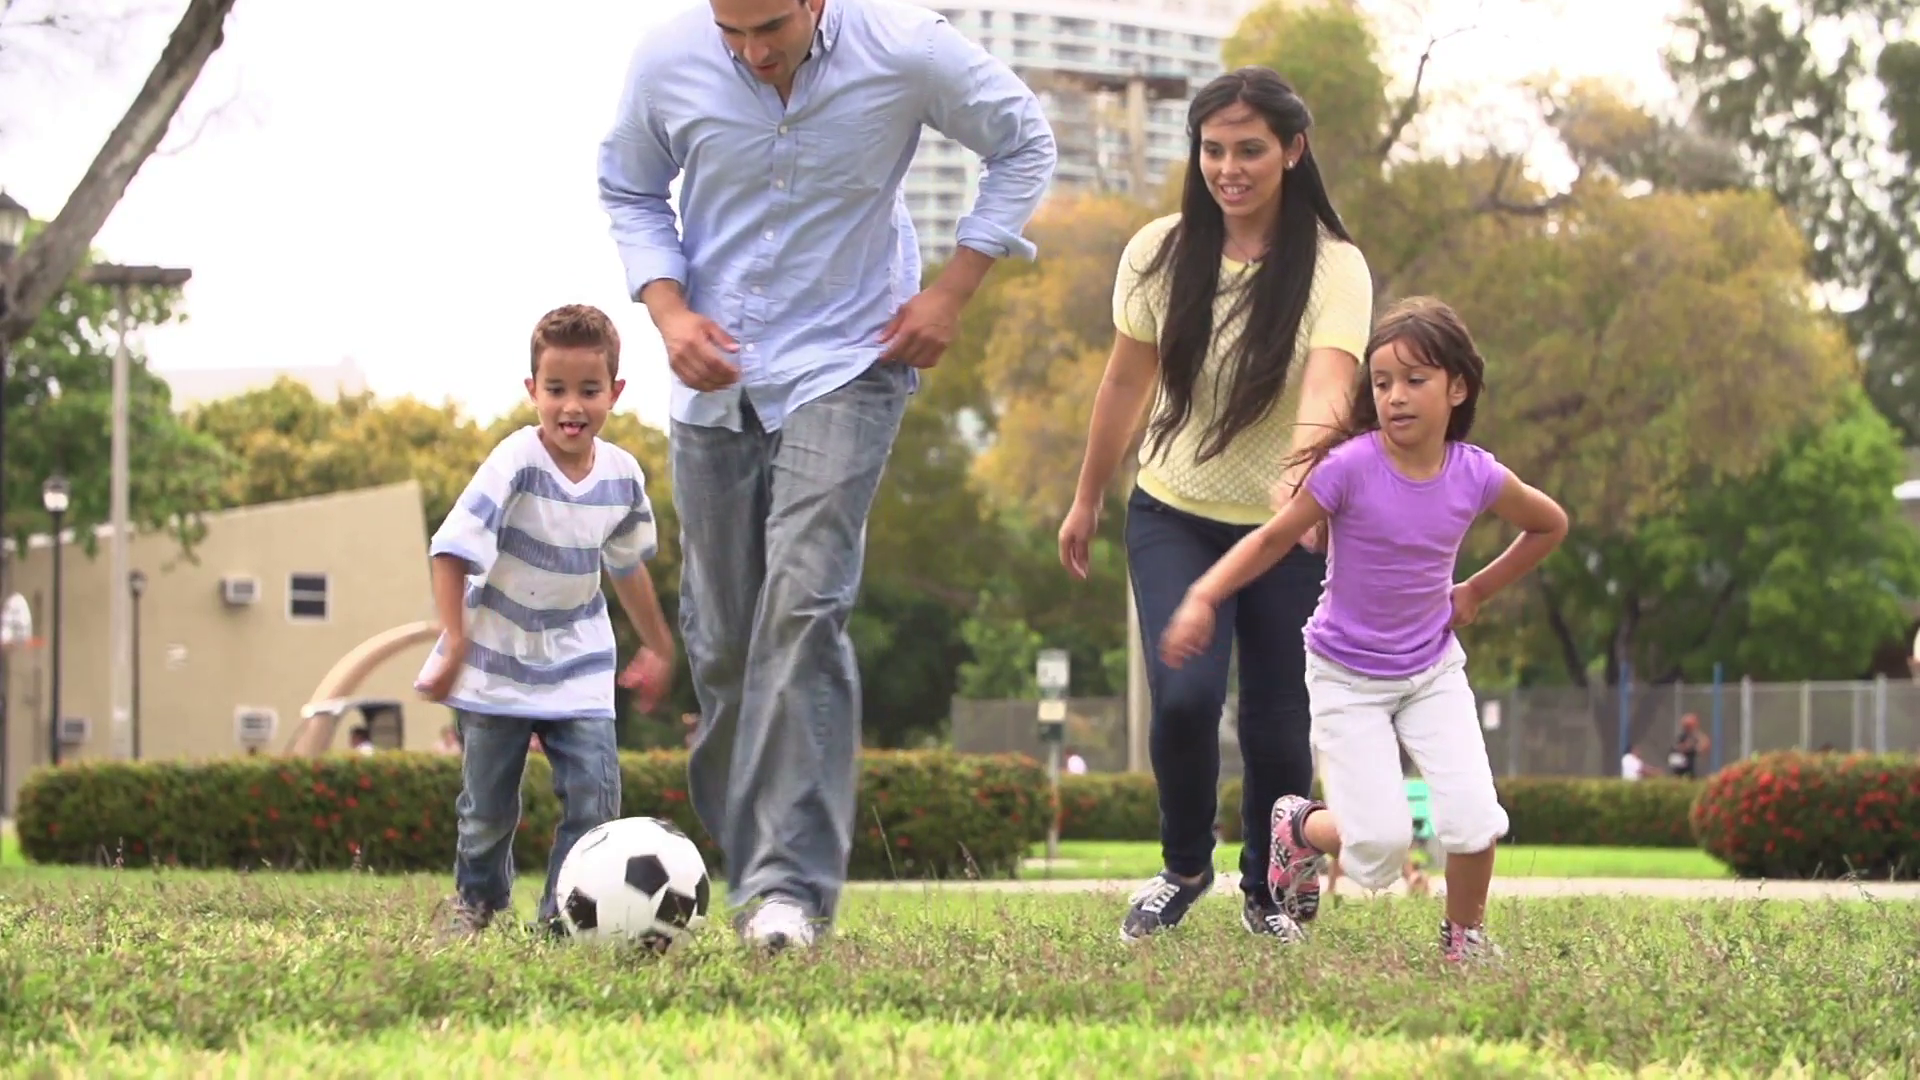 slow-motion-shot-of-hispanic-family-playing-soccer-together_vy1kofc__F0000